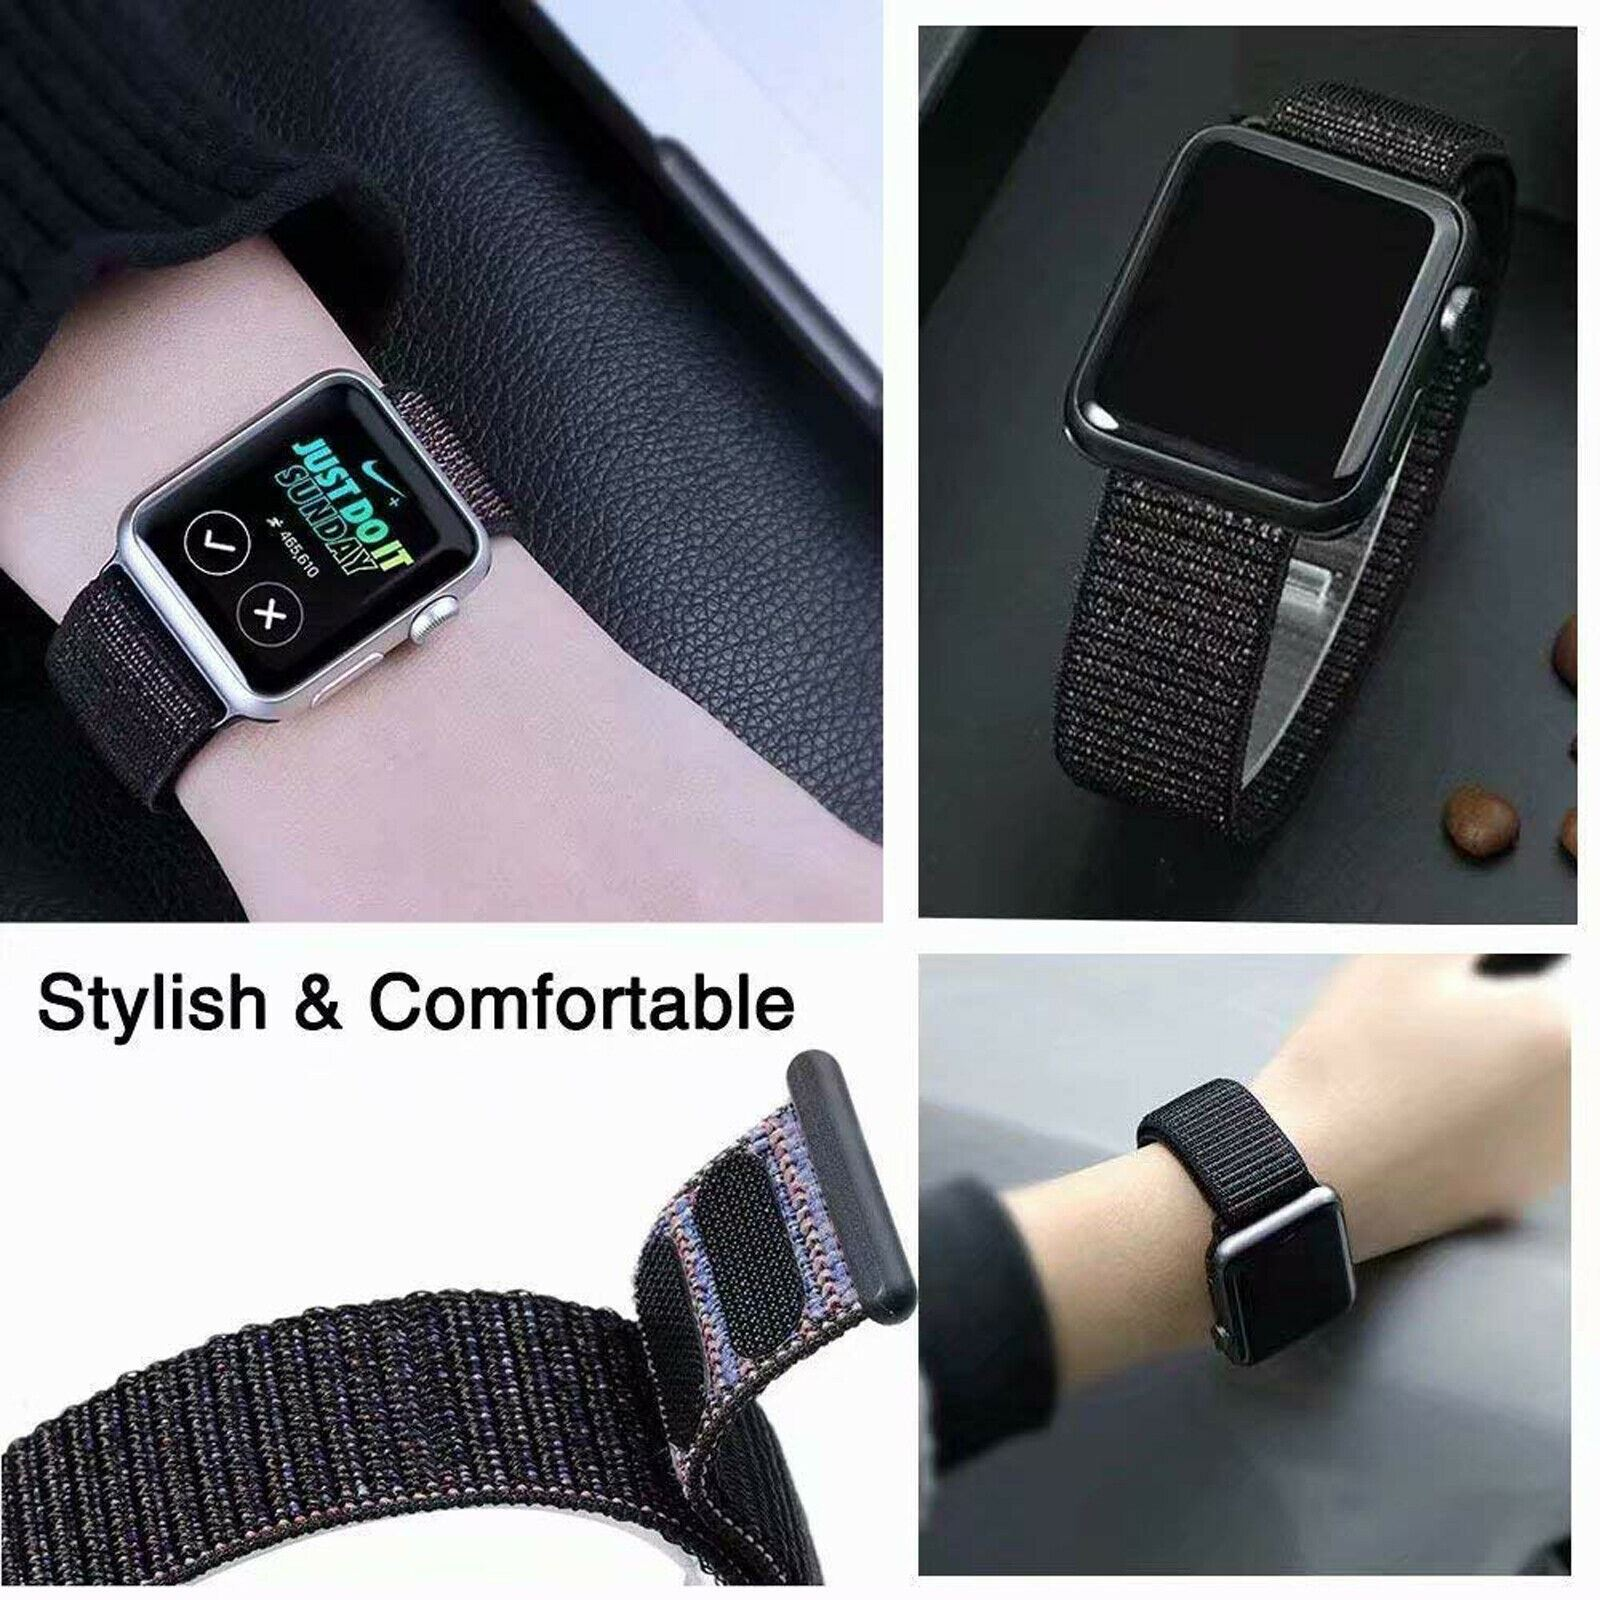 Band-Strap-For-Apple-Watch-Adjustable-Waterproof-Braided-Nylon-Material thumbnail 21